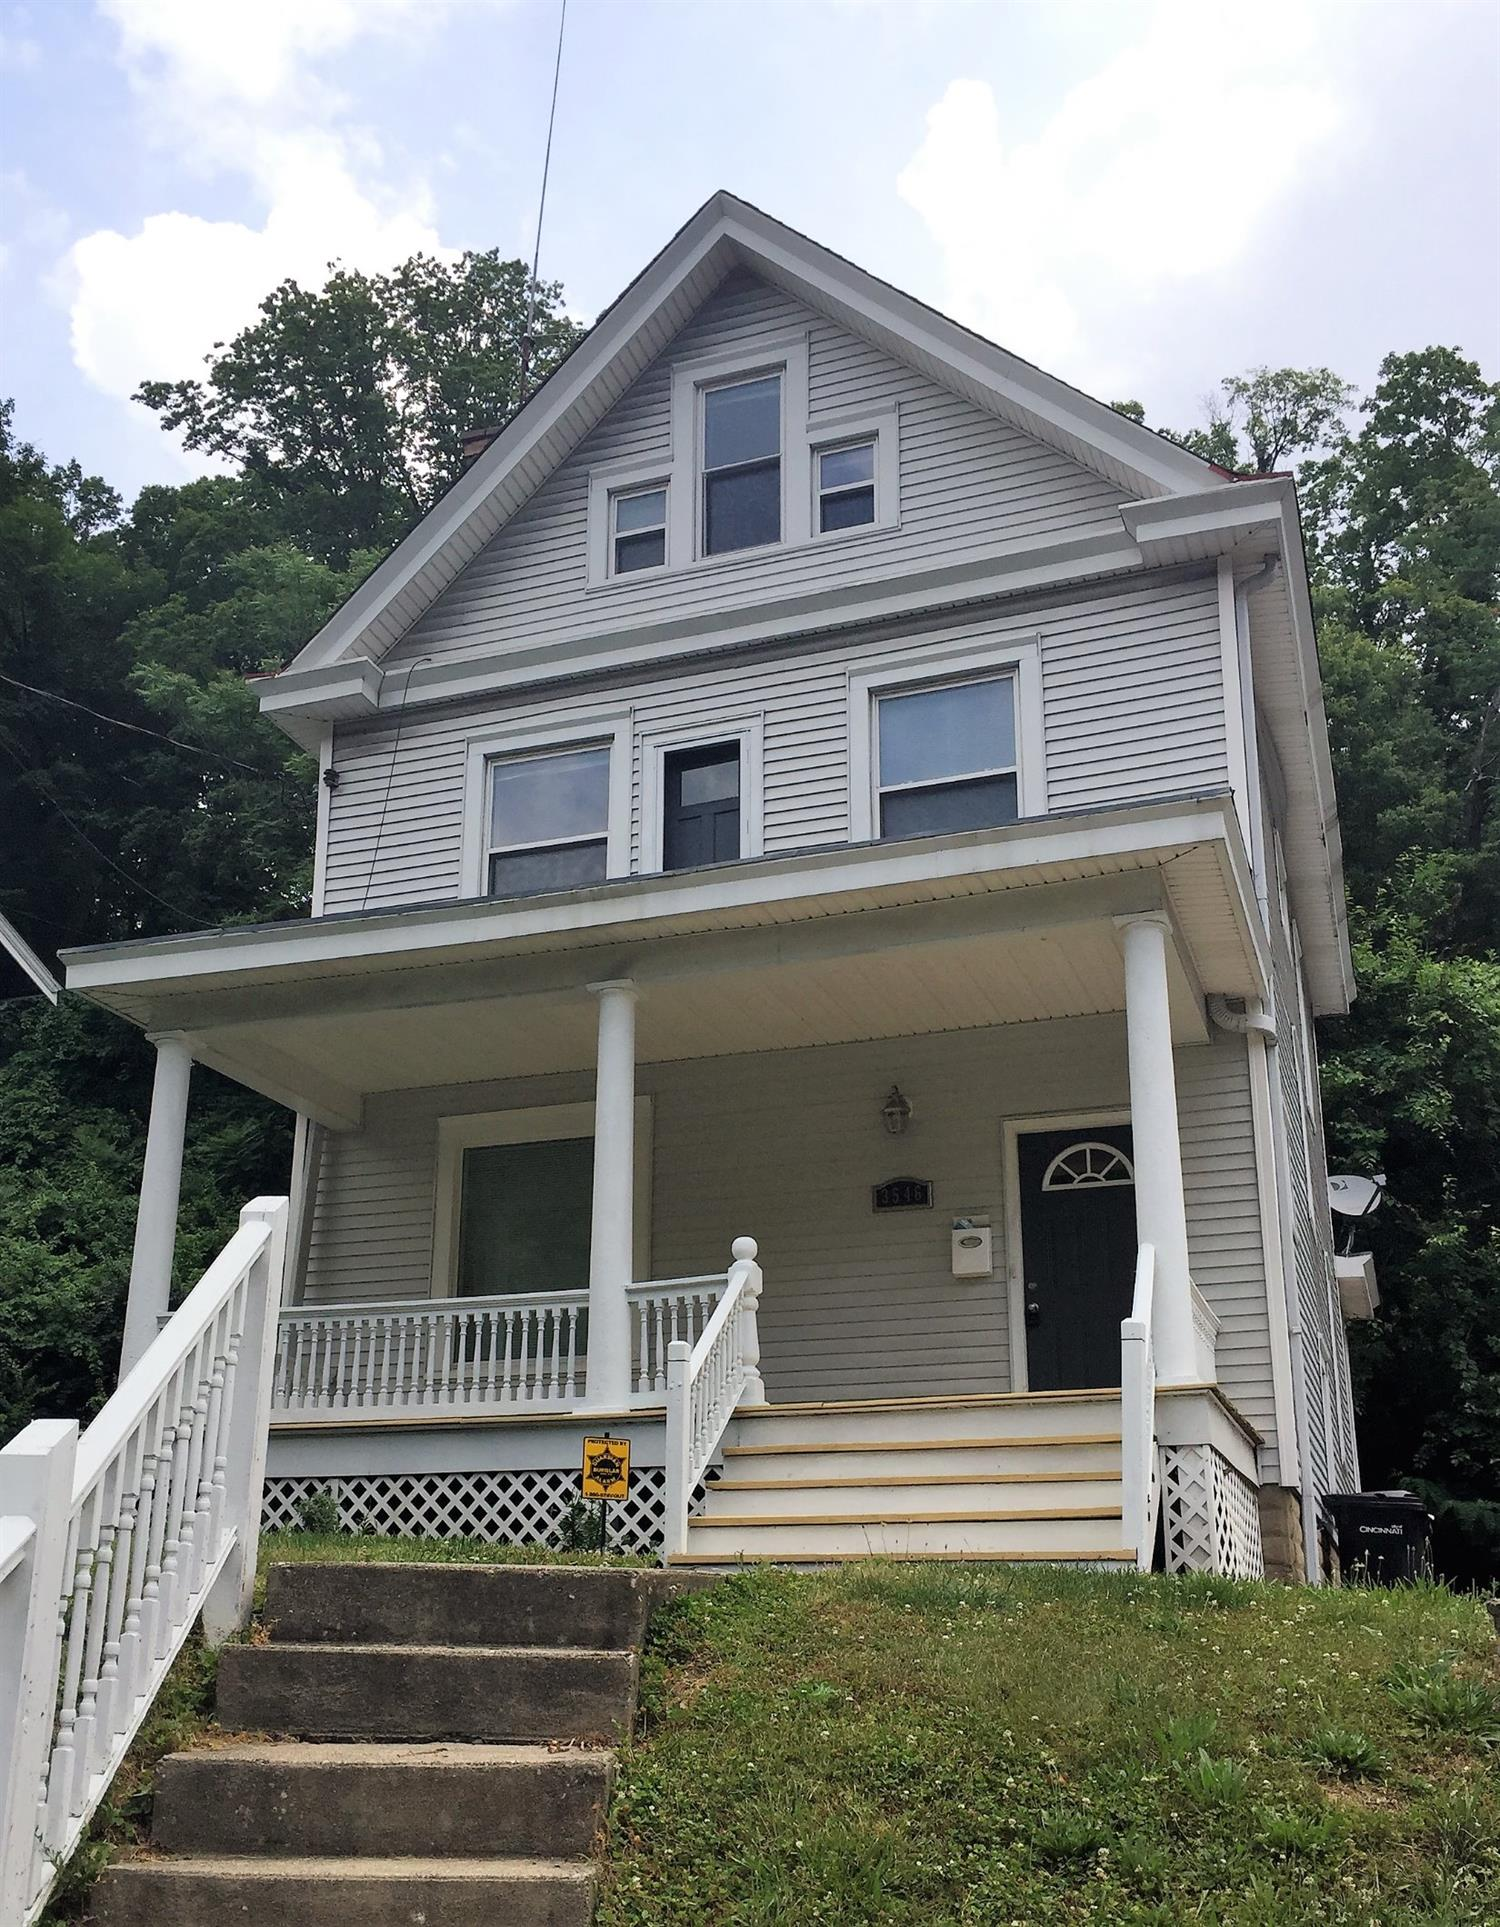 Updated Mt. Lookout home - move in ready! You'll find plenty of space in this beautiful 4 bedroom, 2.5 bath home, minutes from Mt. Lookout Square! Walk-in master closet, open kitchen/dining area, hardwood floors and laundry has been moved to the 1st floor. Must see!